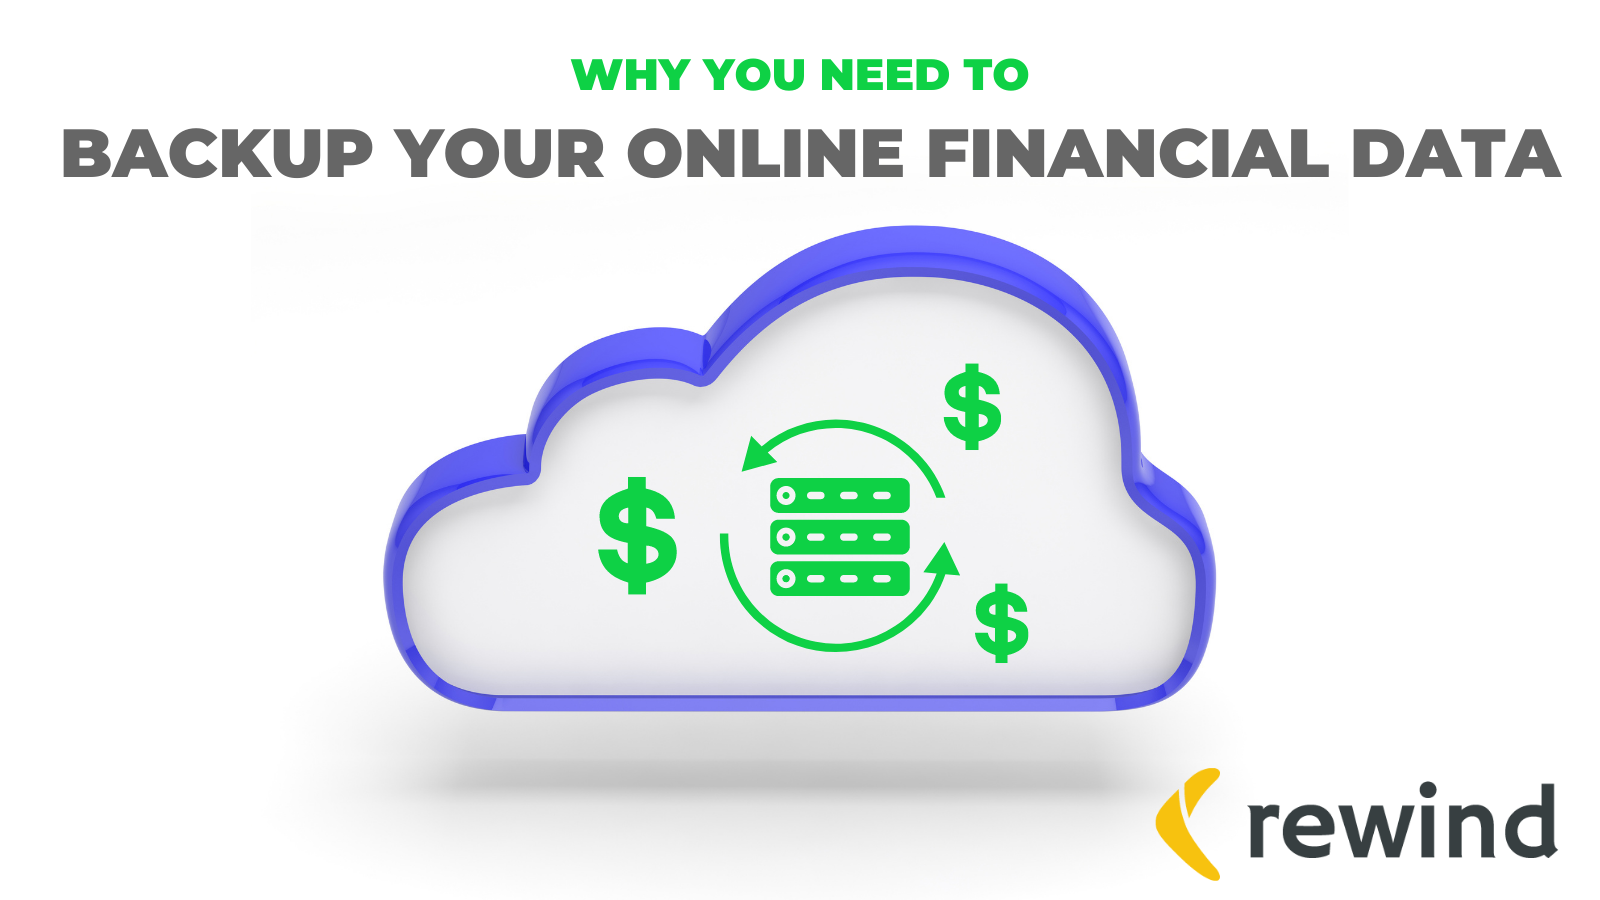 Why You Need to Backup Your Online Financial Data